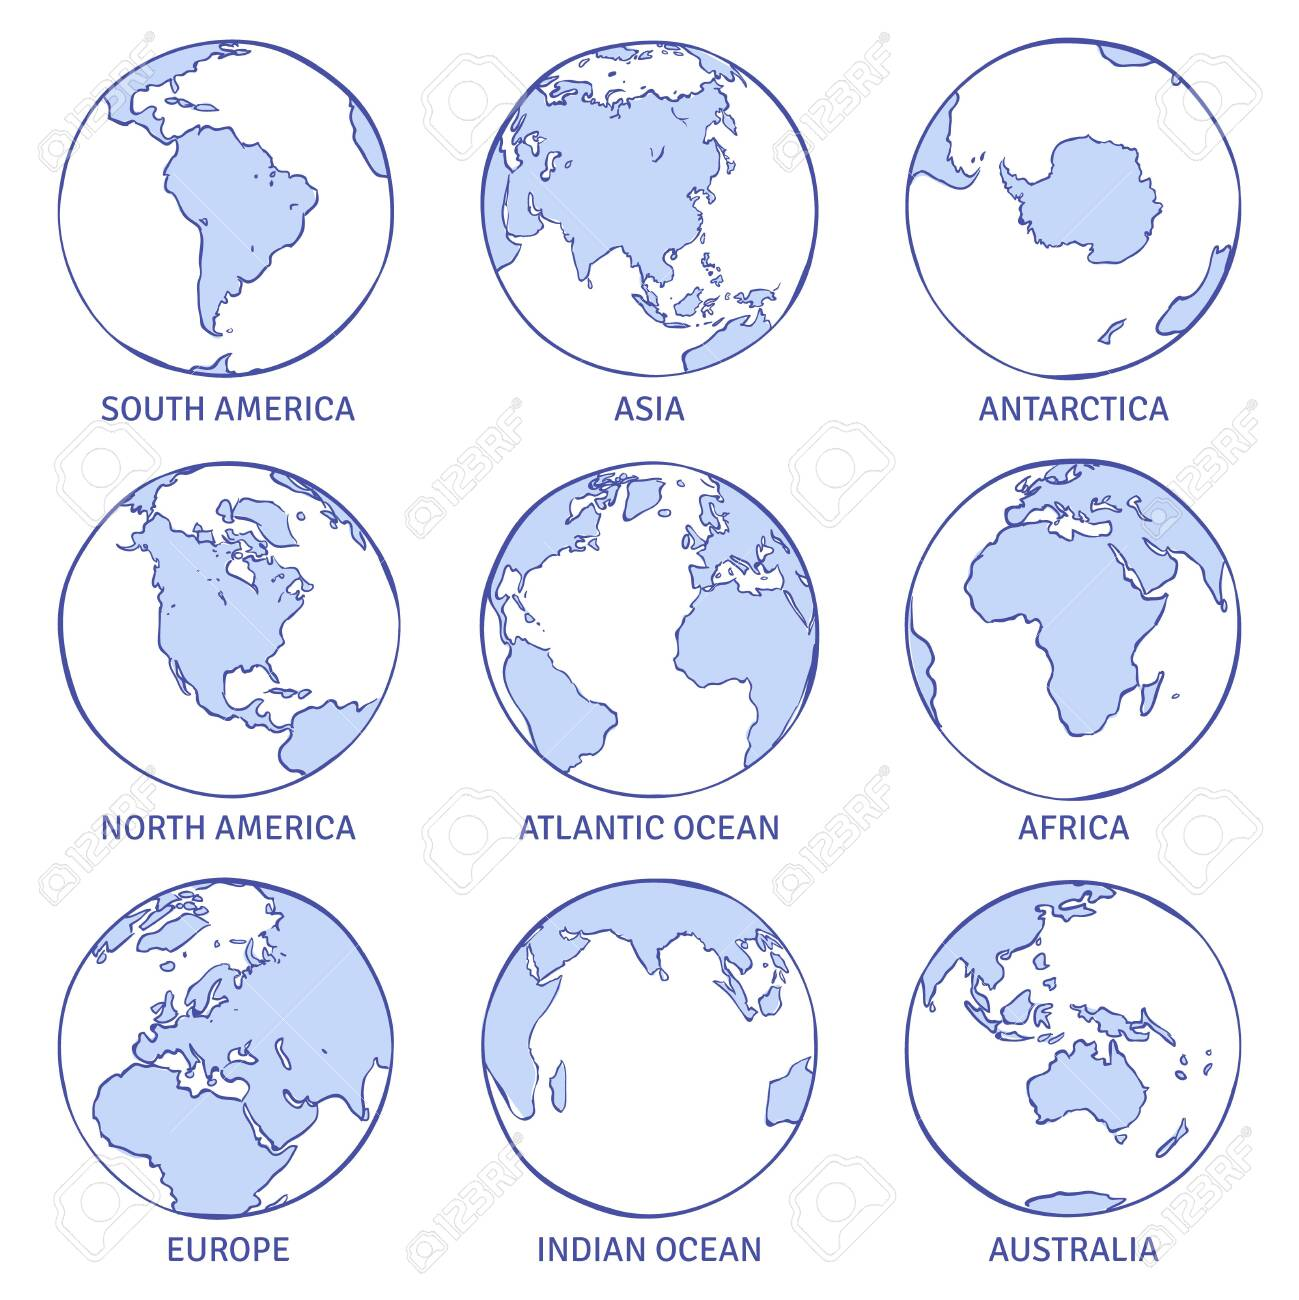 Sketch earth. Map world hand drawn globe, earth circle concept continents contour planet oceans land doodle collection - 121811054